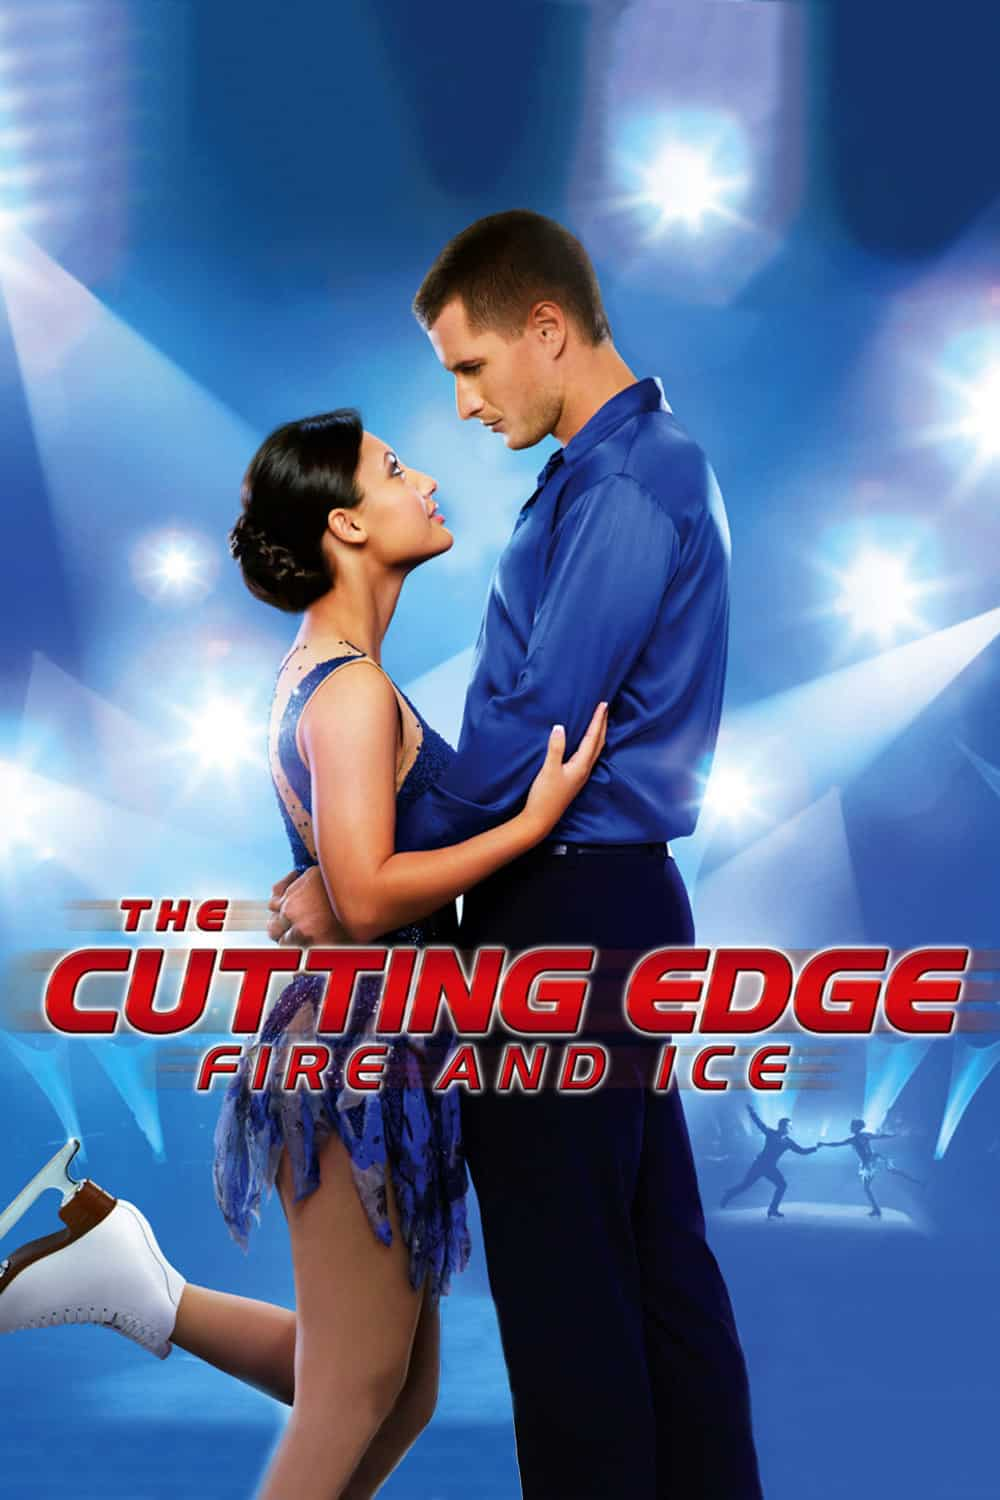 The Cutting Edge: Fire and Ice, 2010